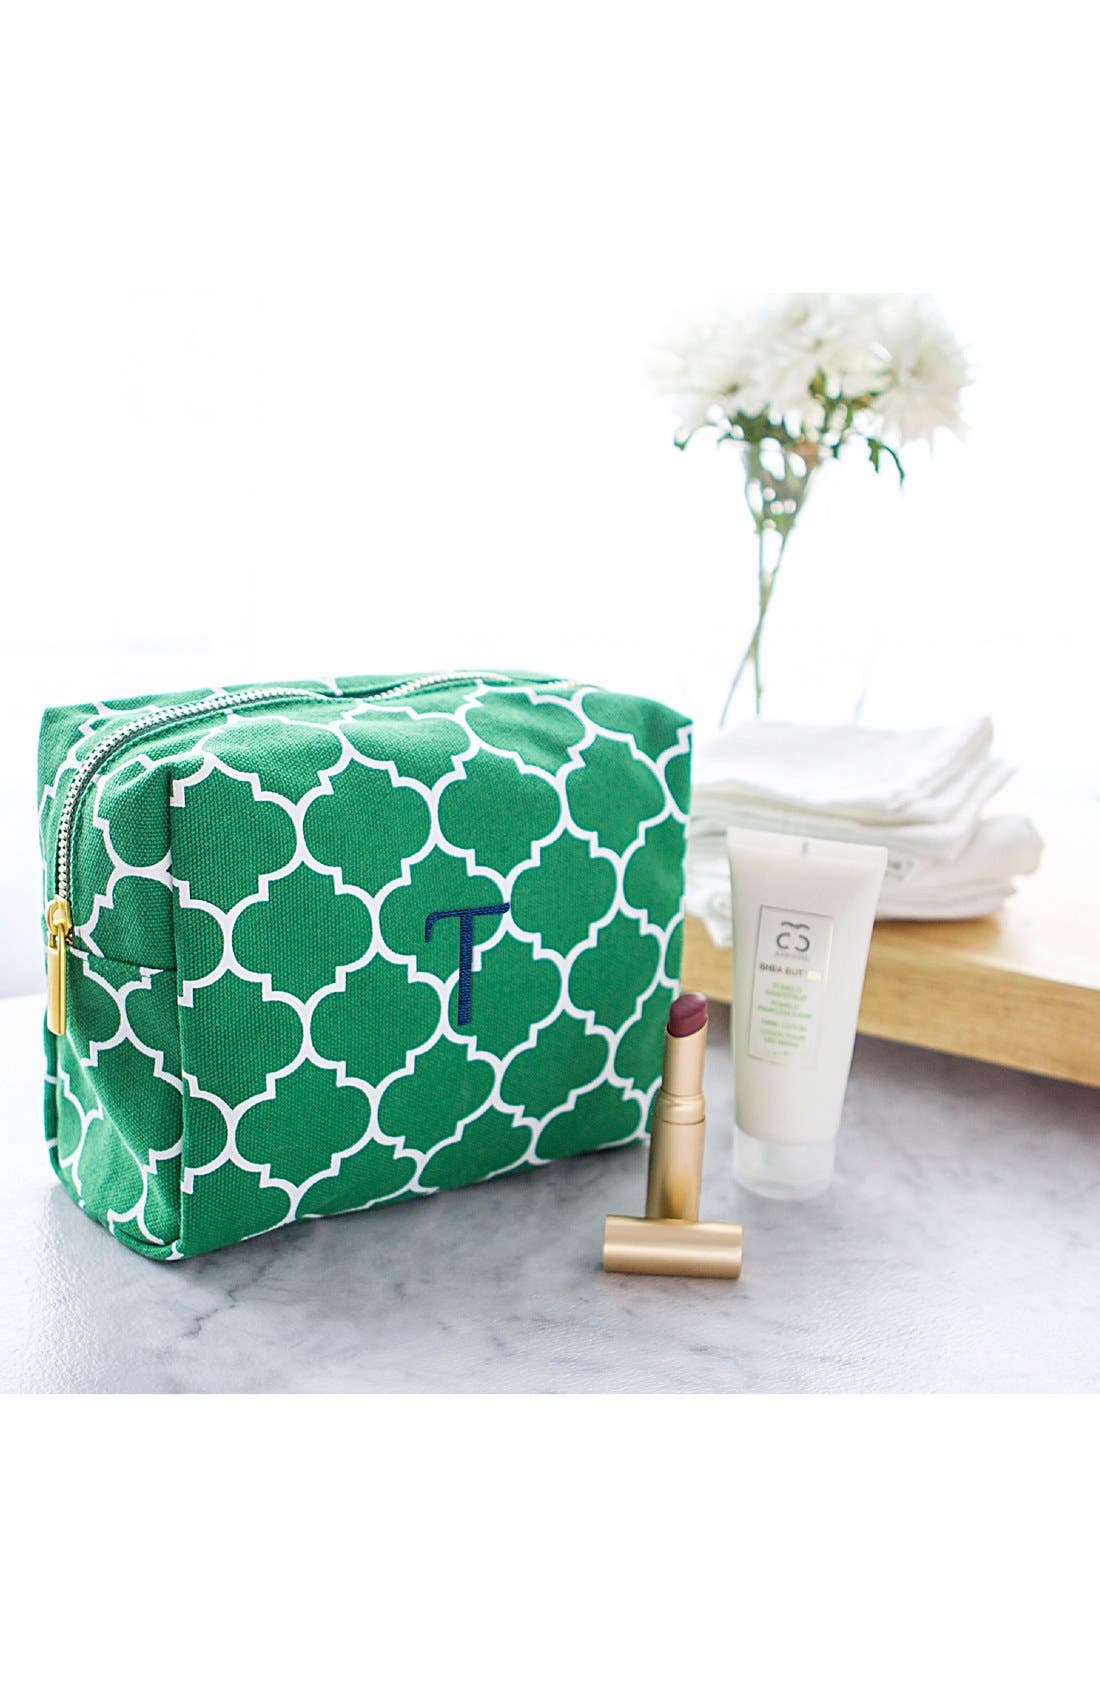 Monogram Cosmetics Bag,                             Alternate thumbnail 3, color,